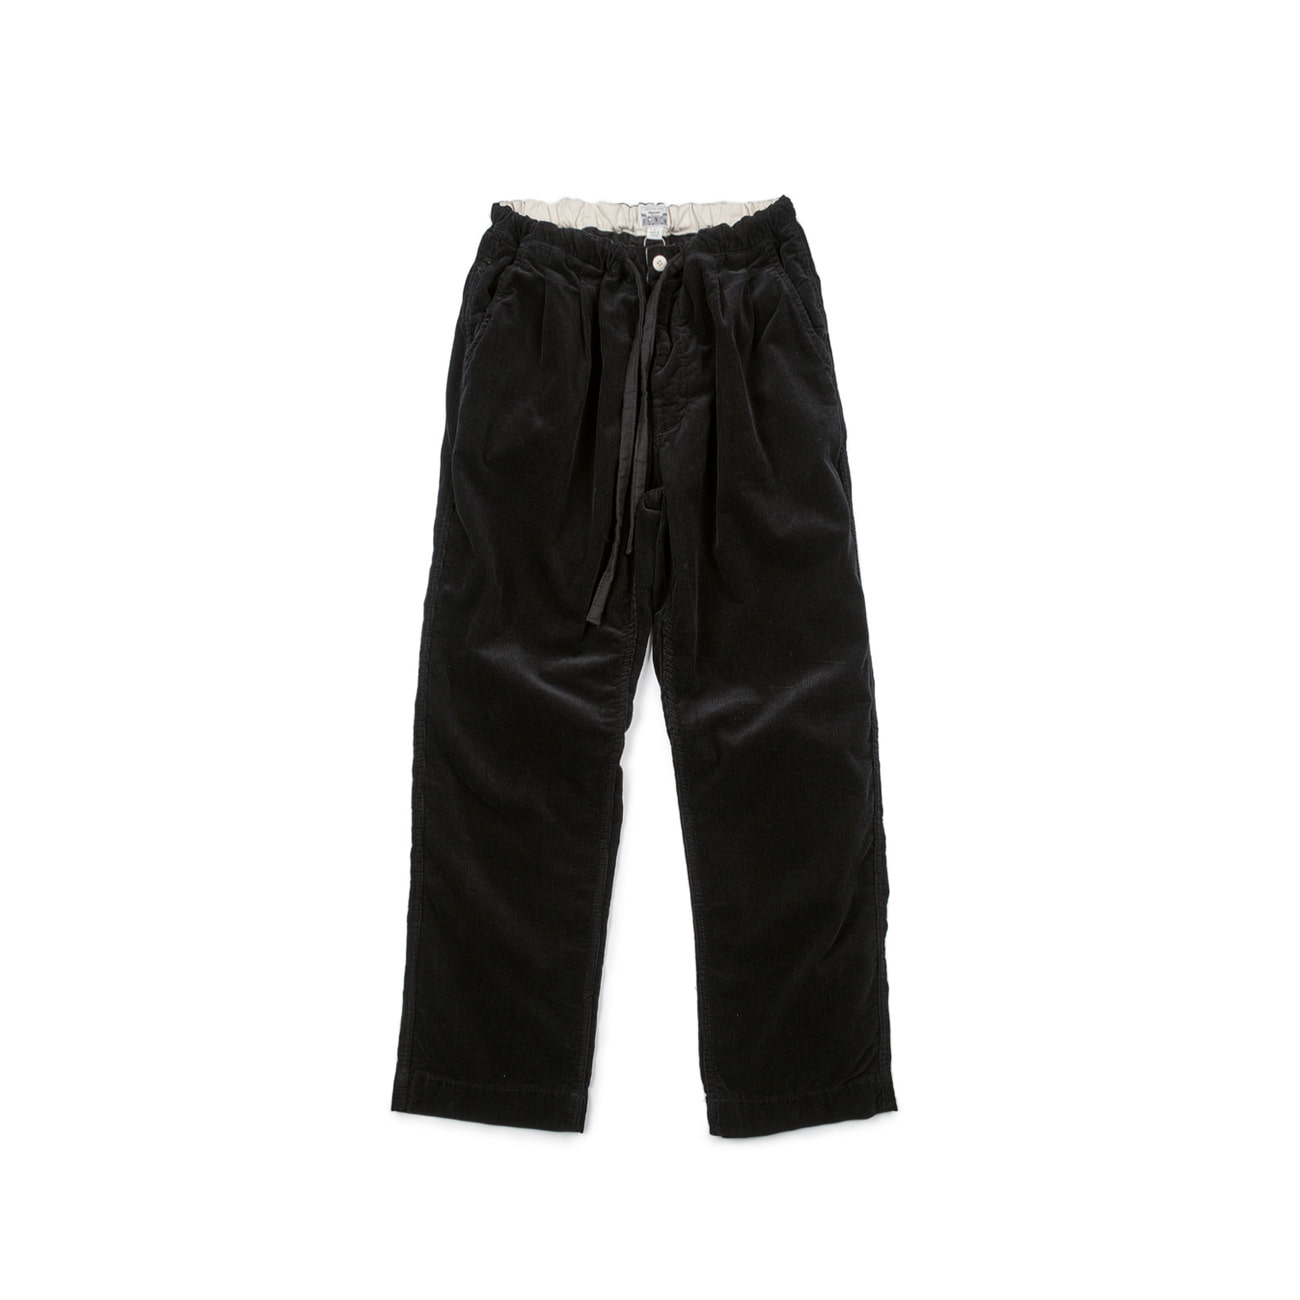 Corduroy Easy Pants Black